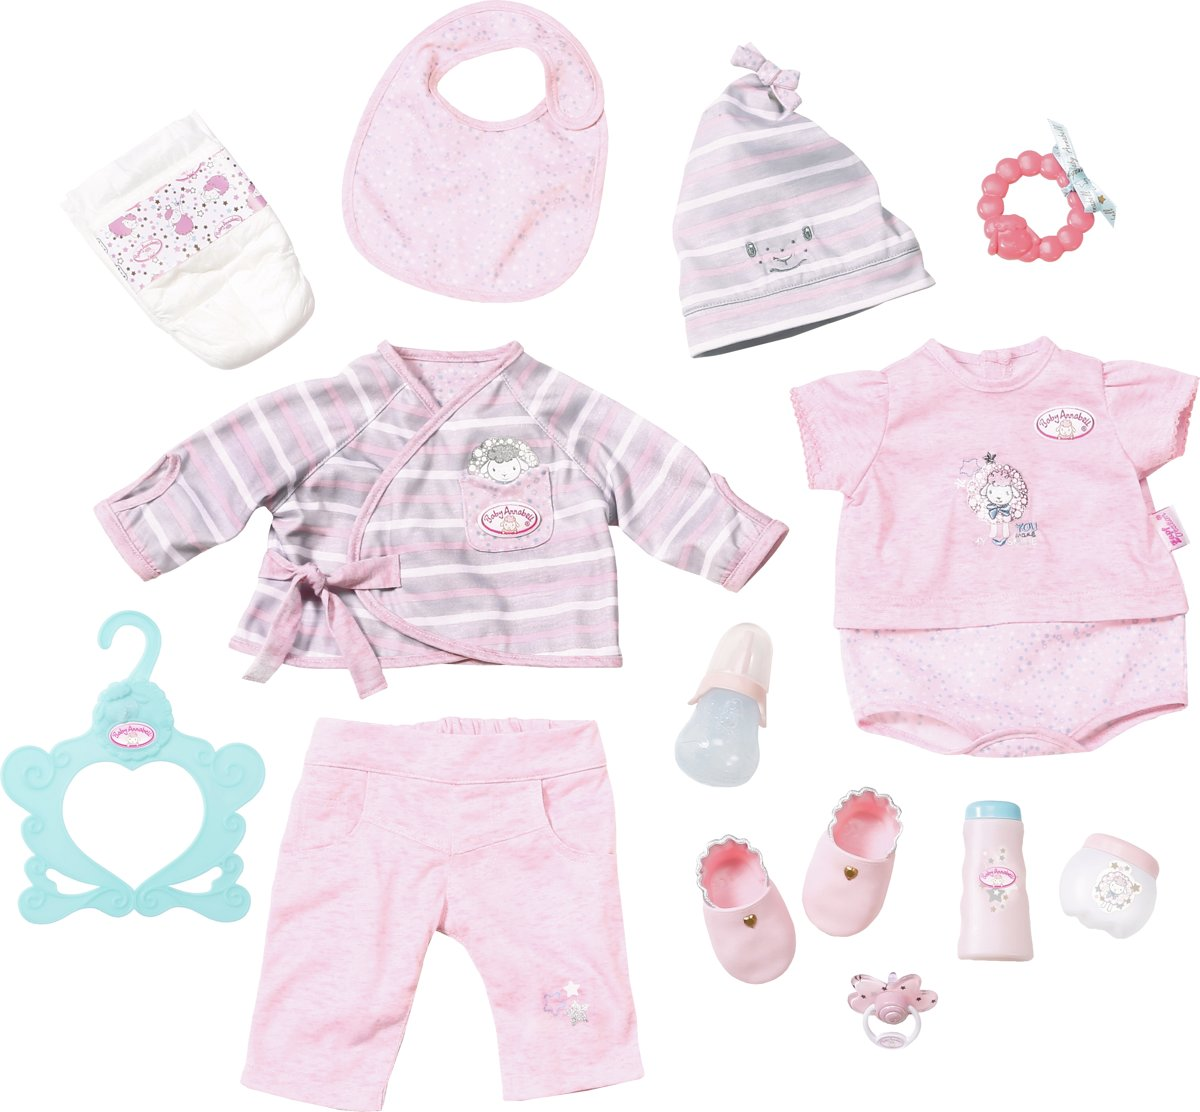 Baby Annabell® Deluxe Special Care Set